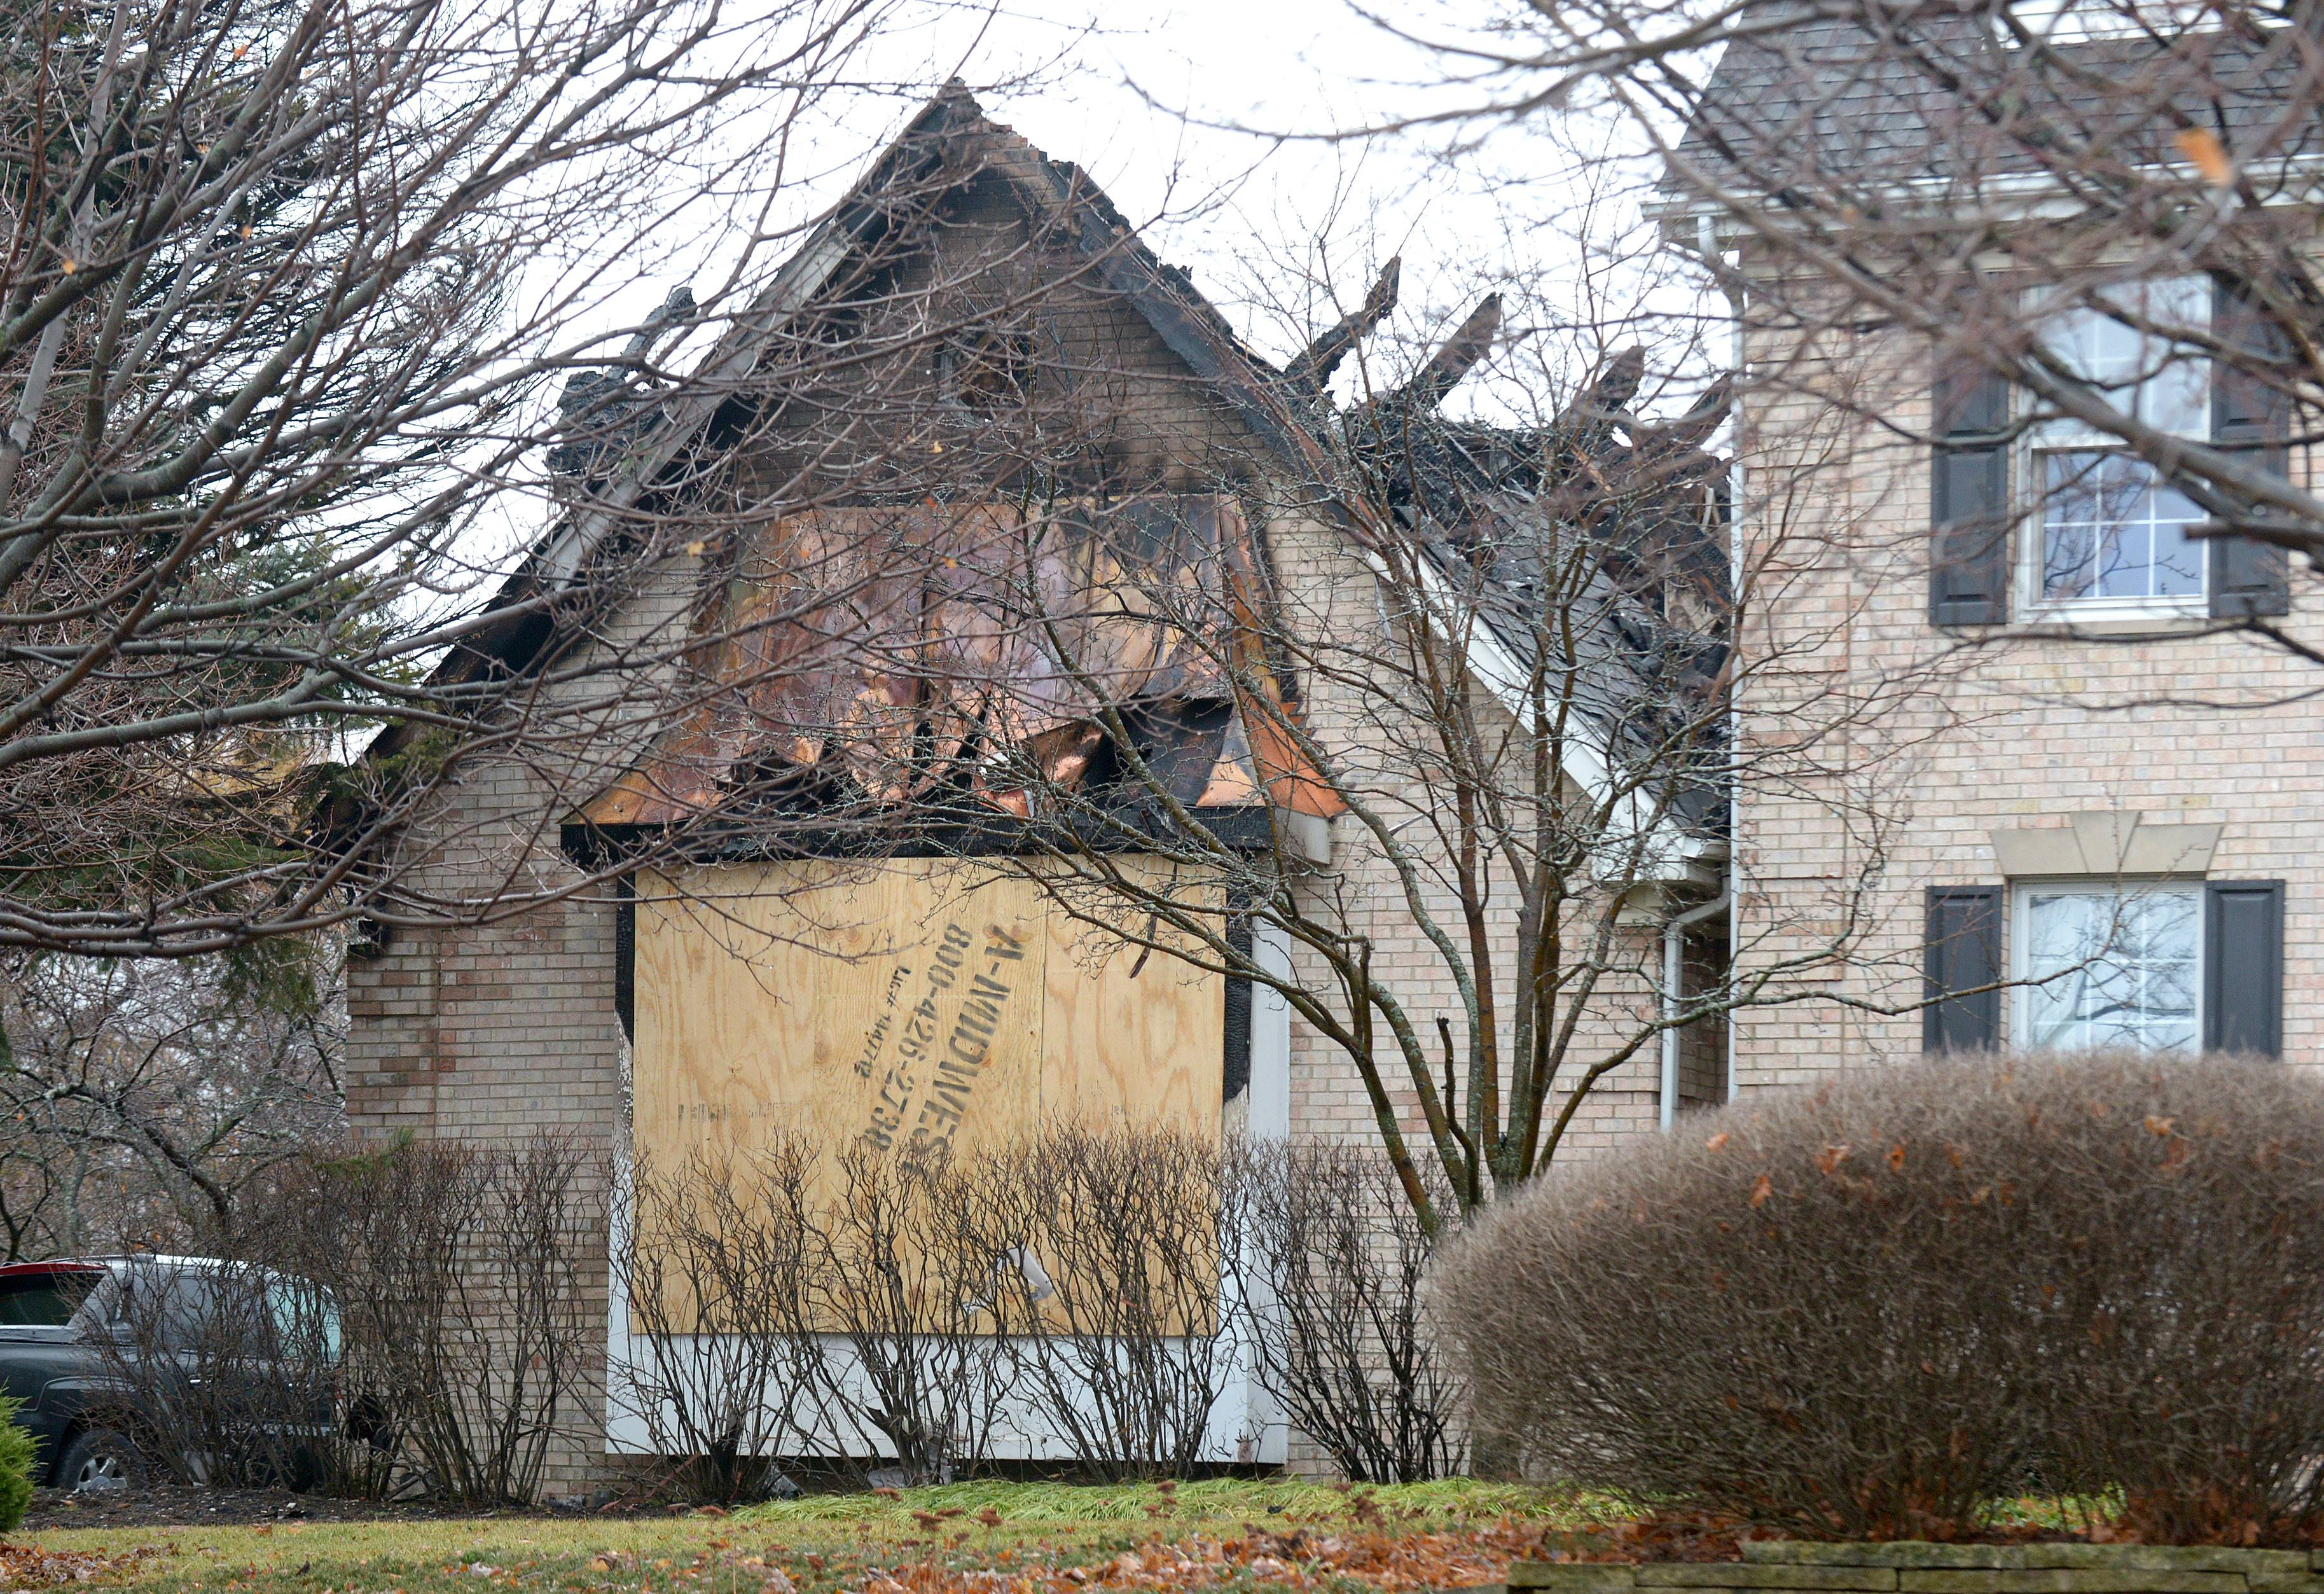 A midnight fire caused $200,000 damage to a house and its contents Tuesday in St. Charles Township. Nobody was injured.